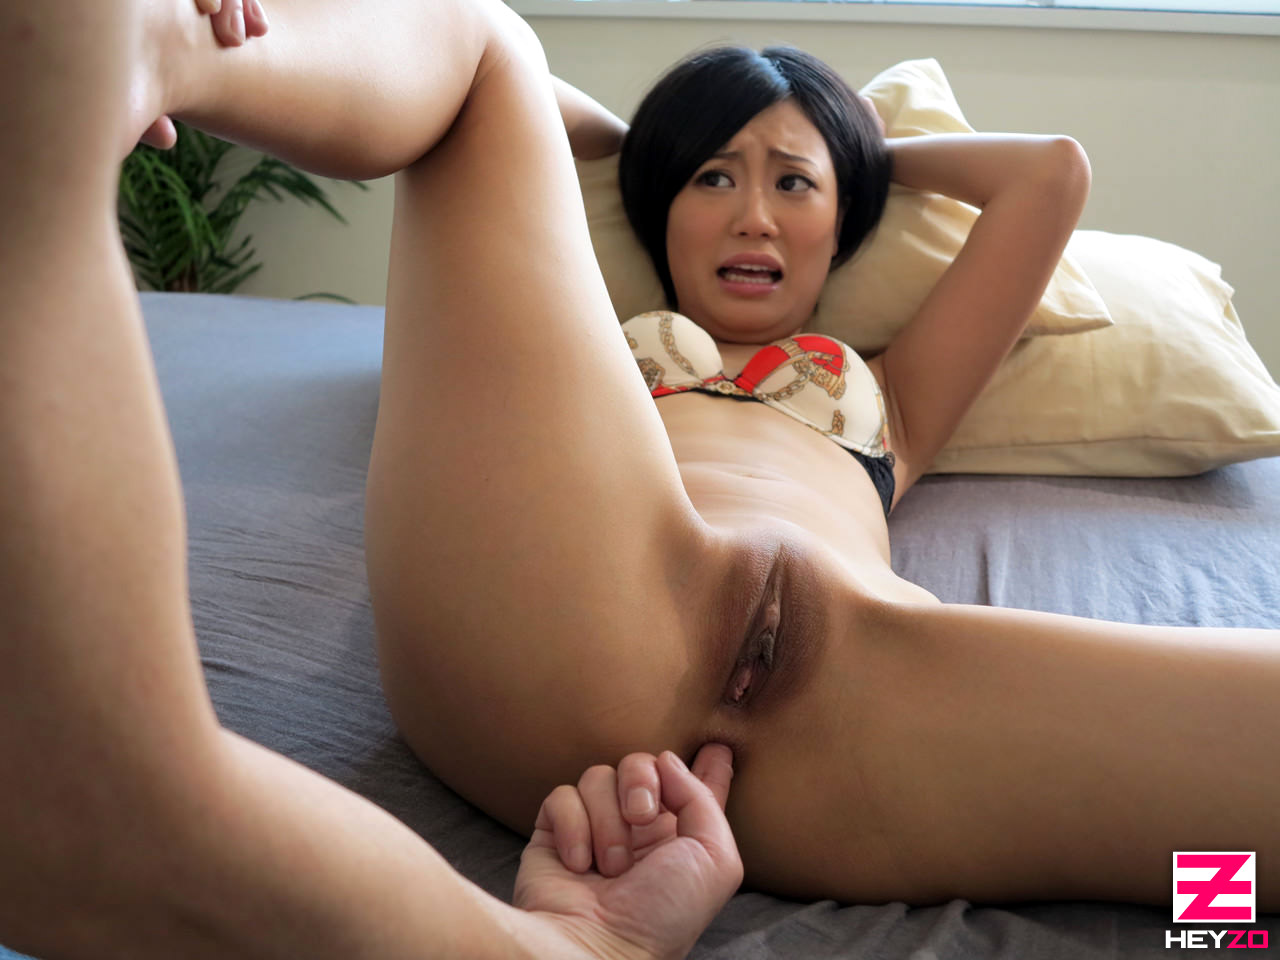 School girl hard fuck and facial by big monster cock 2